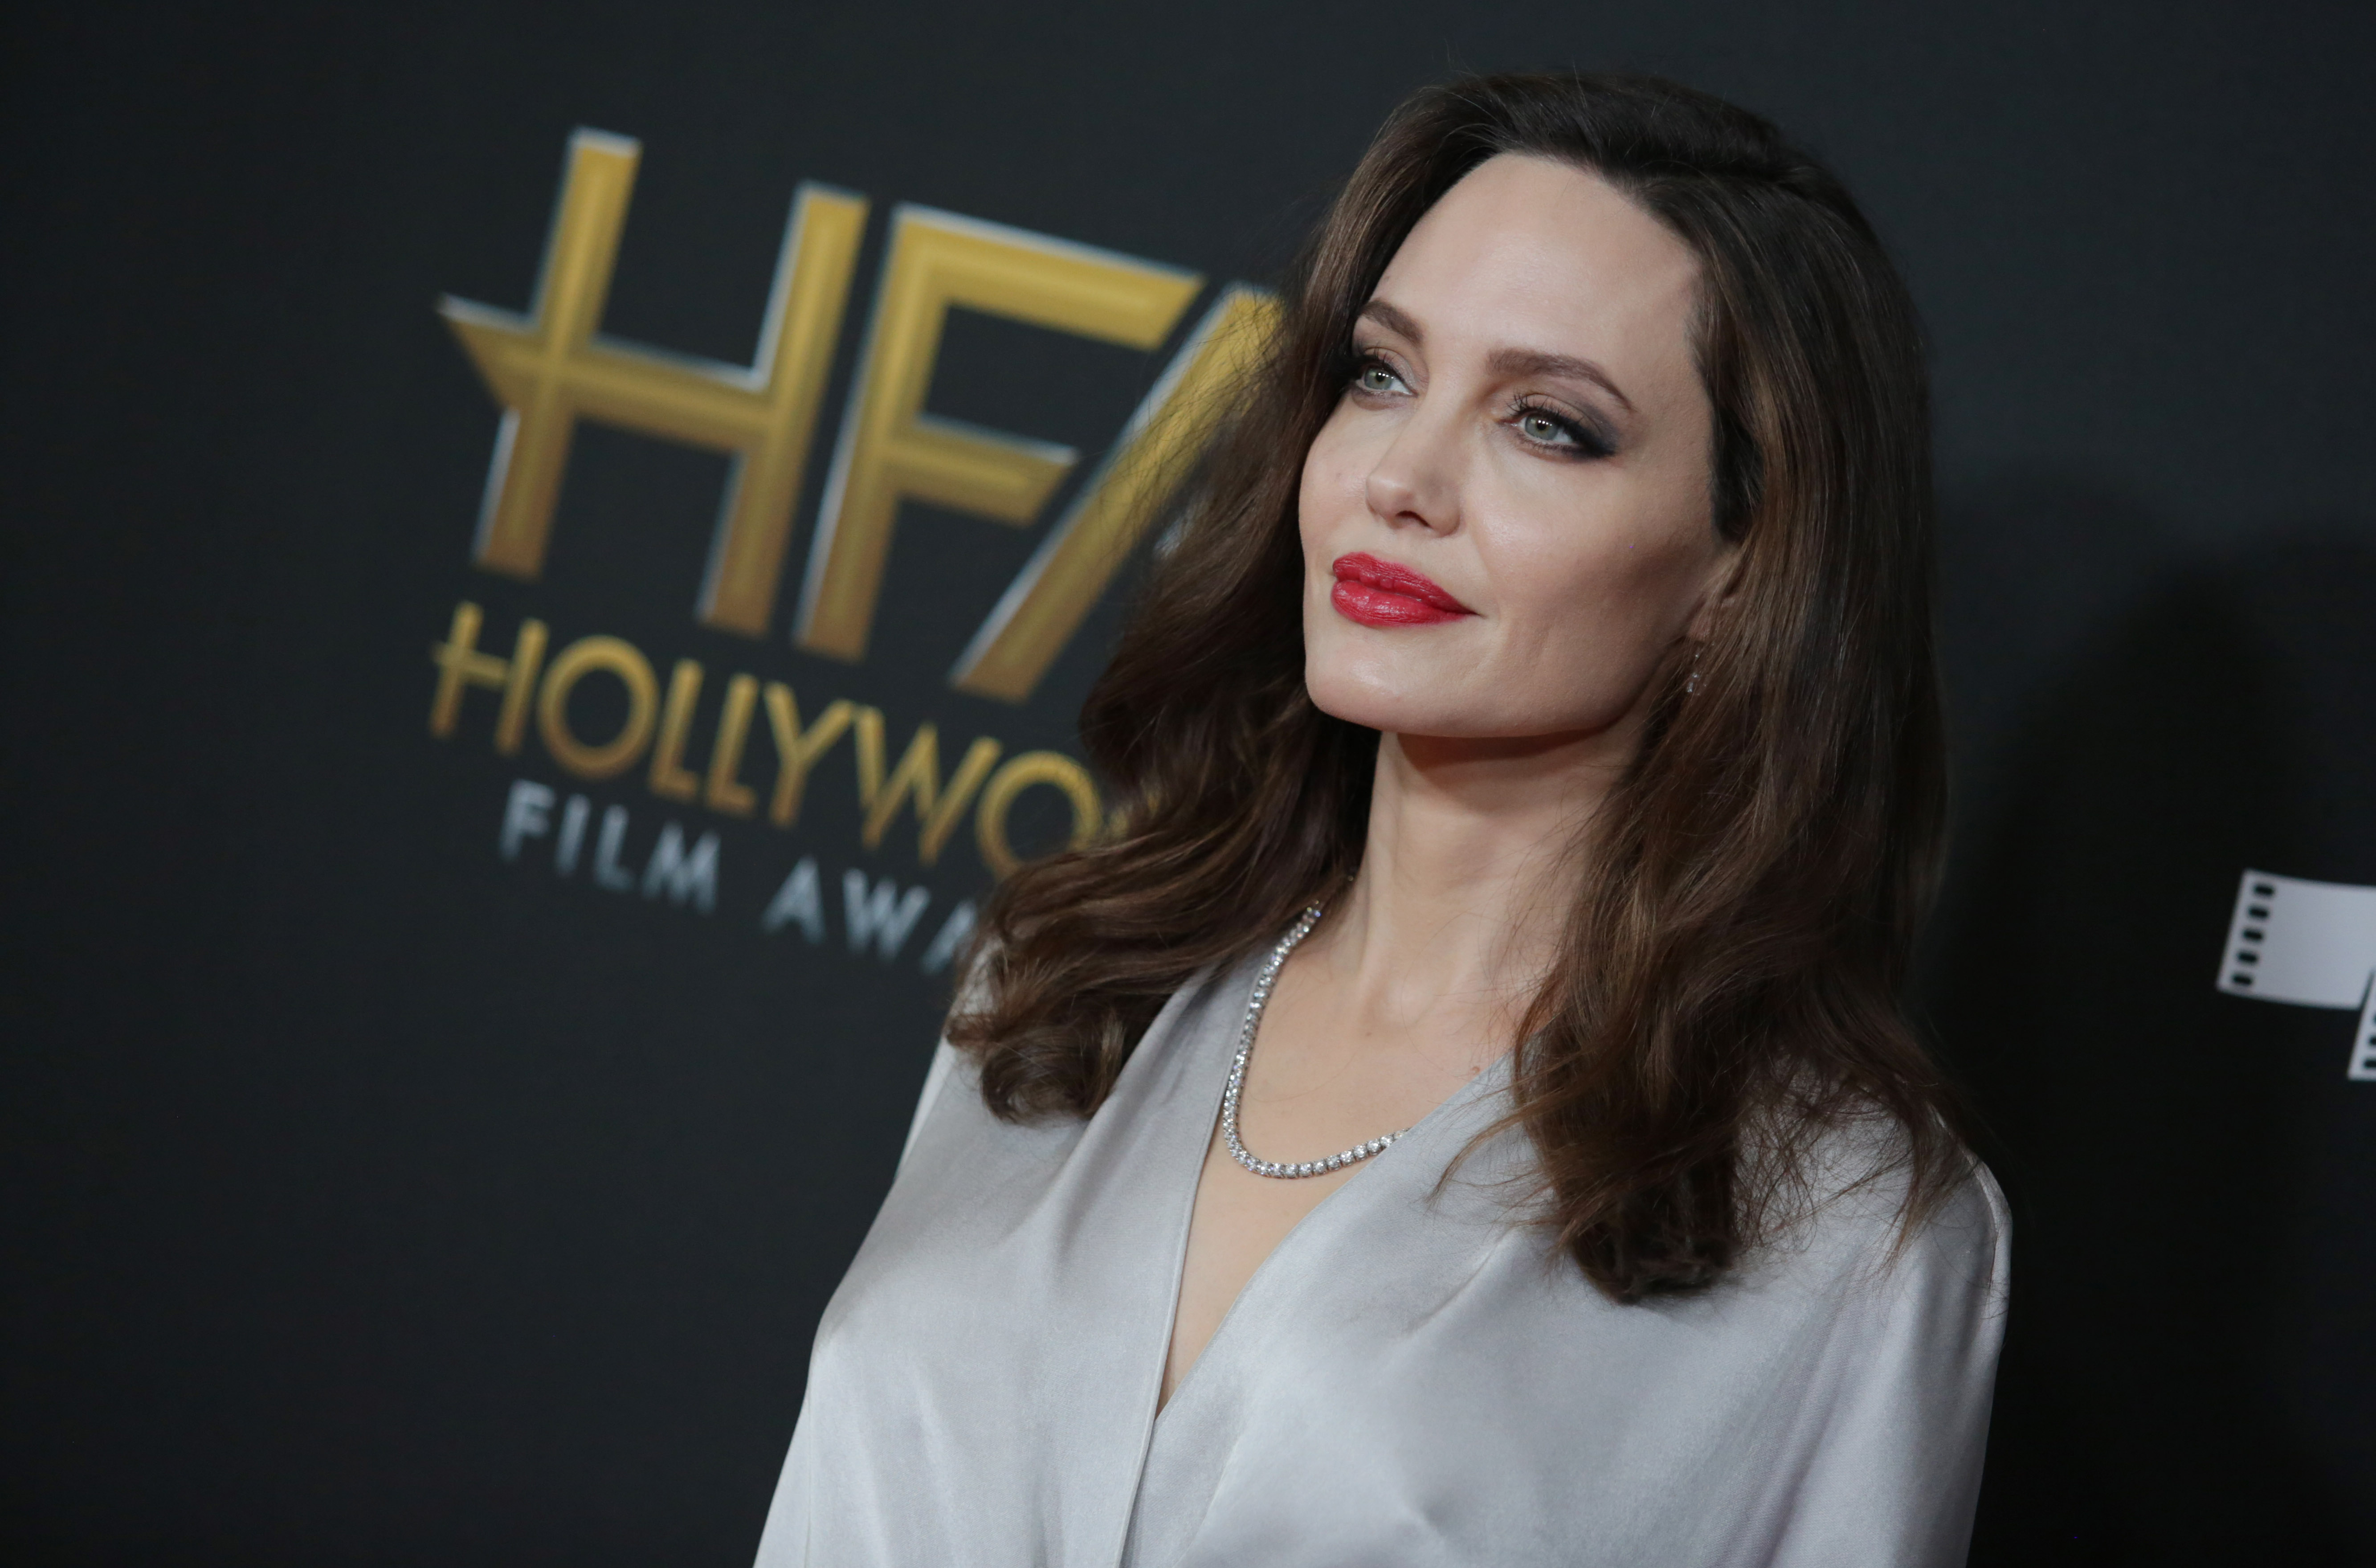 How Did #MeToo Impact Hollywood in 2019? Angelina Jolie, Jennifer Lopez & More Stars Speak Out